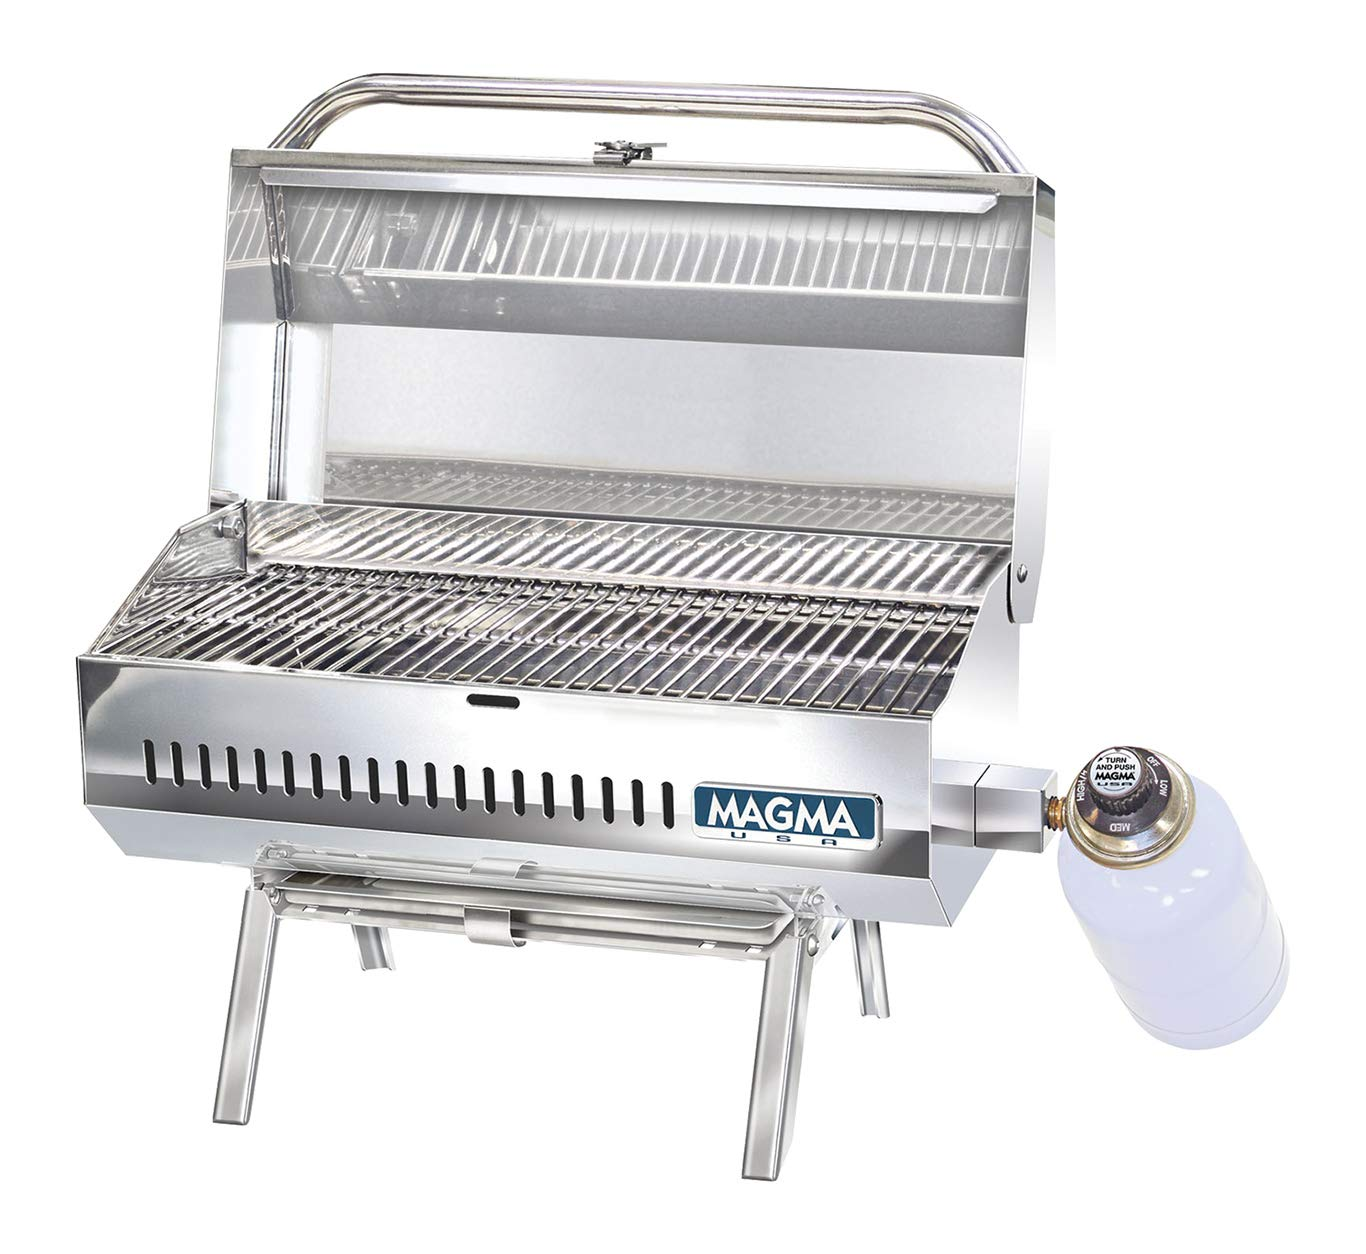 Magma Products, A10-803 Connoisseur Series ChefsMate Portable Gas Grill by Magma